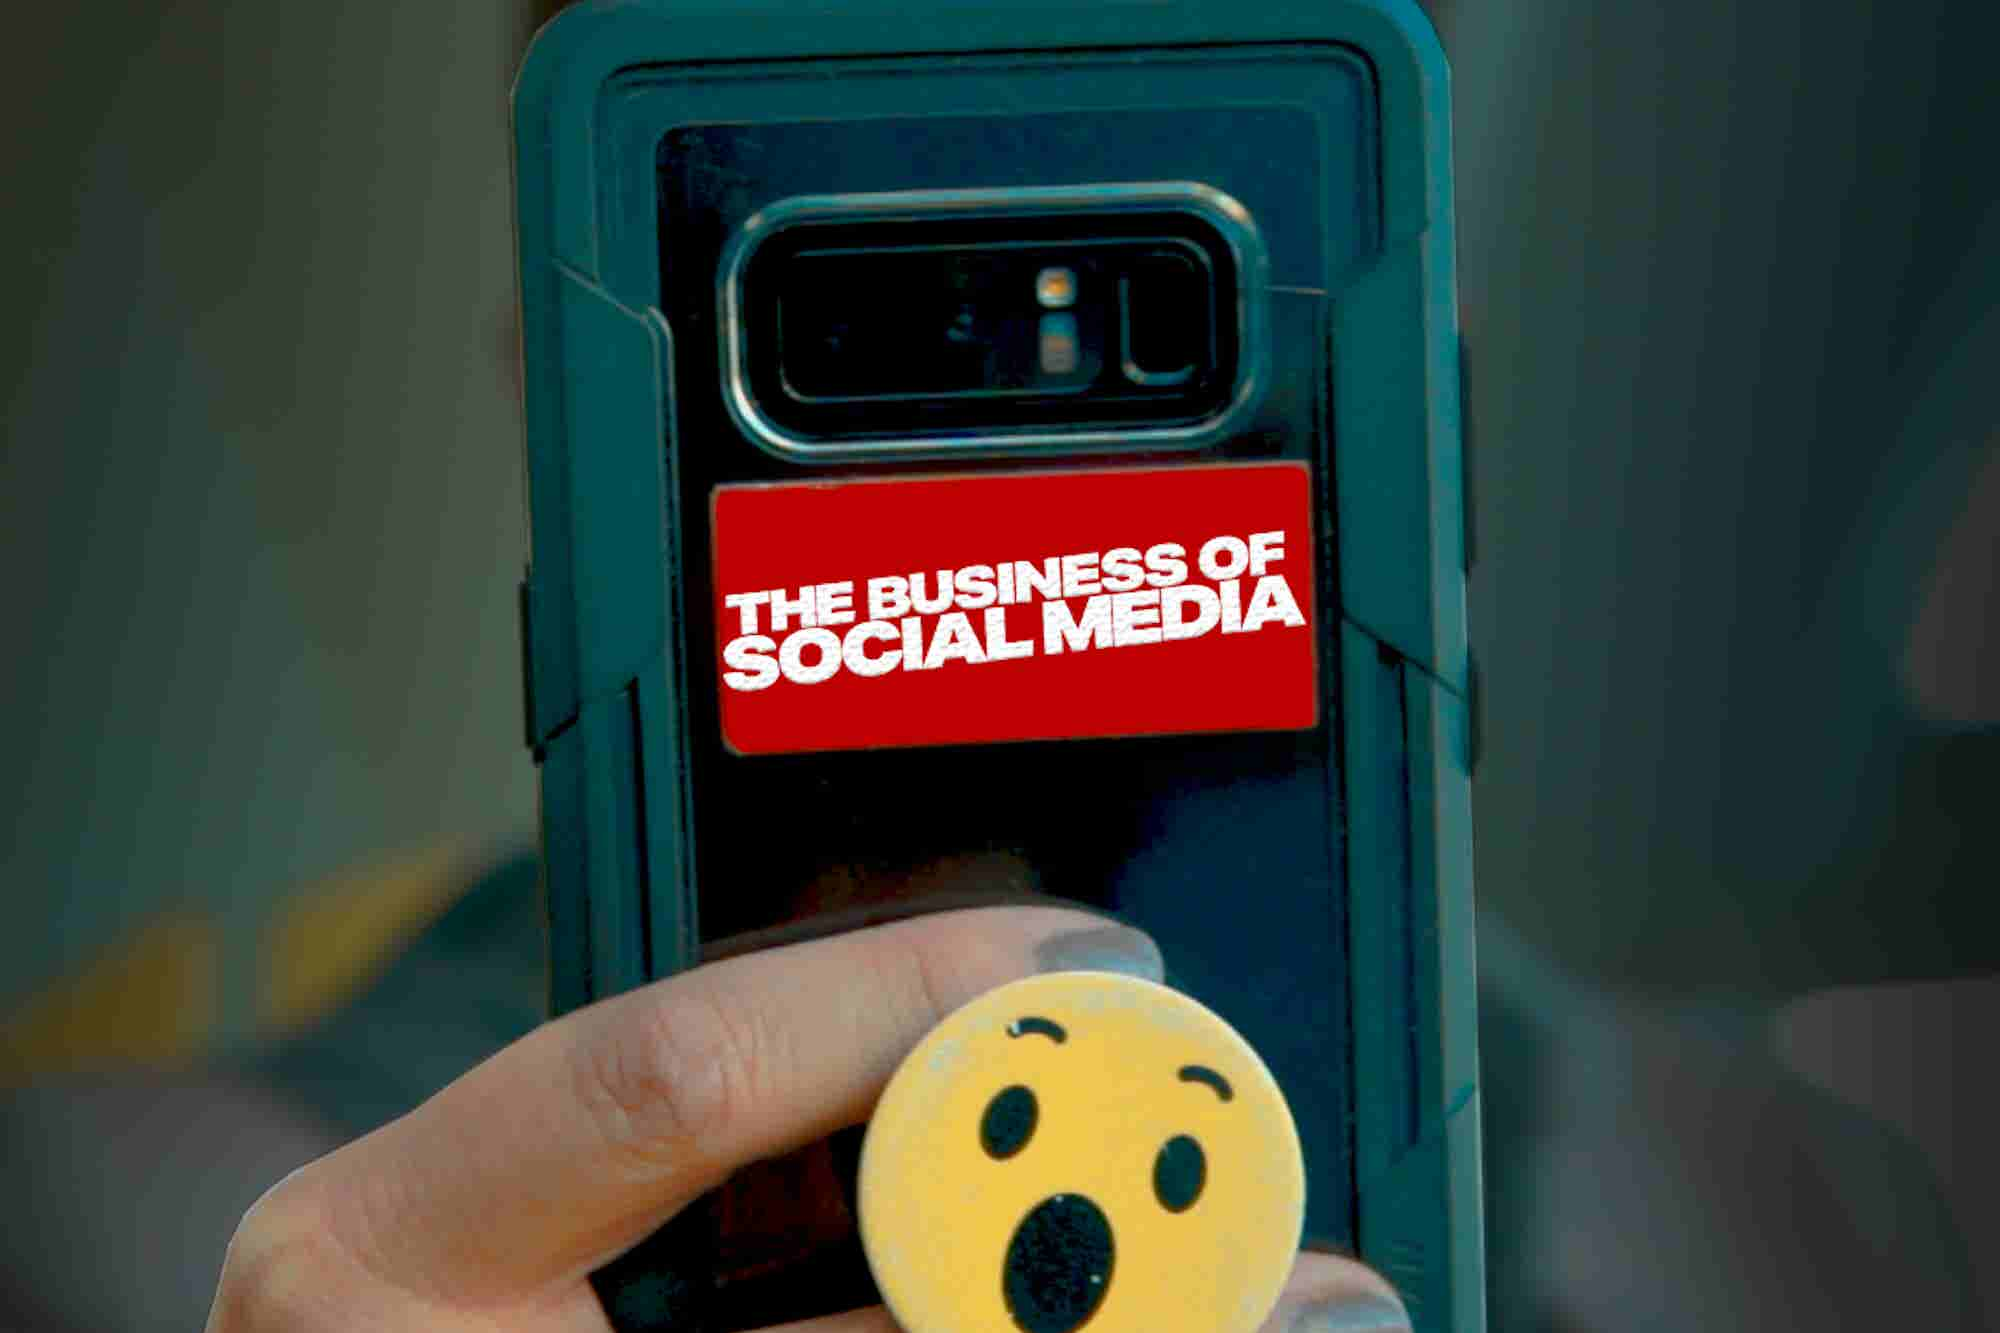 Want to Build Your Brand on Social Media? Here Are Some Quick Tips.